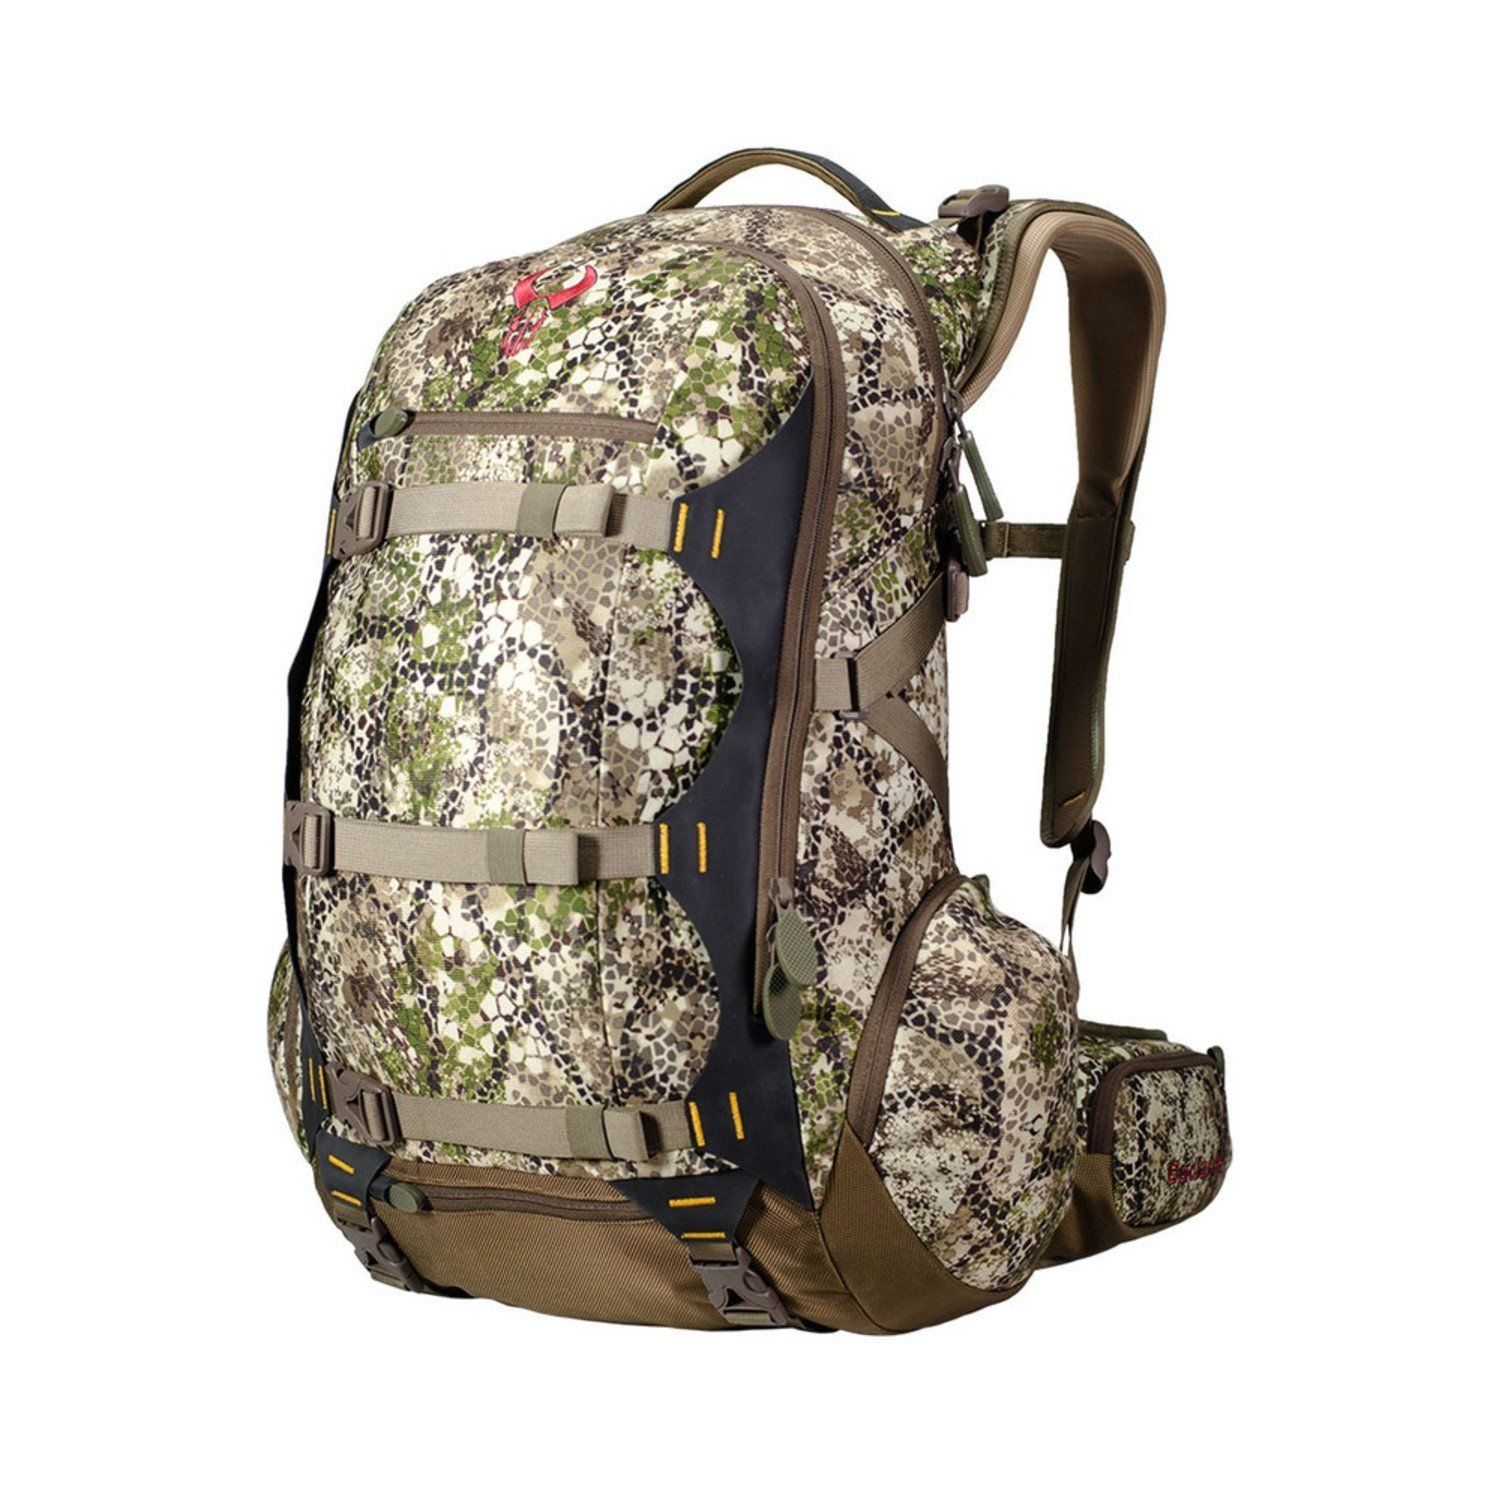 Badlands Diablo Hunting Day Pack If You Love This Read Review